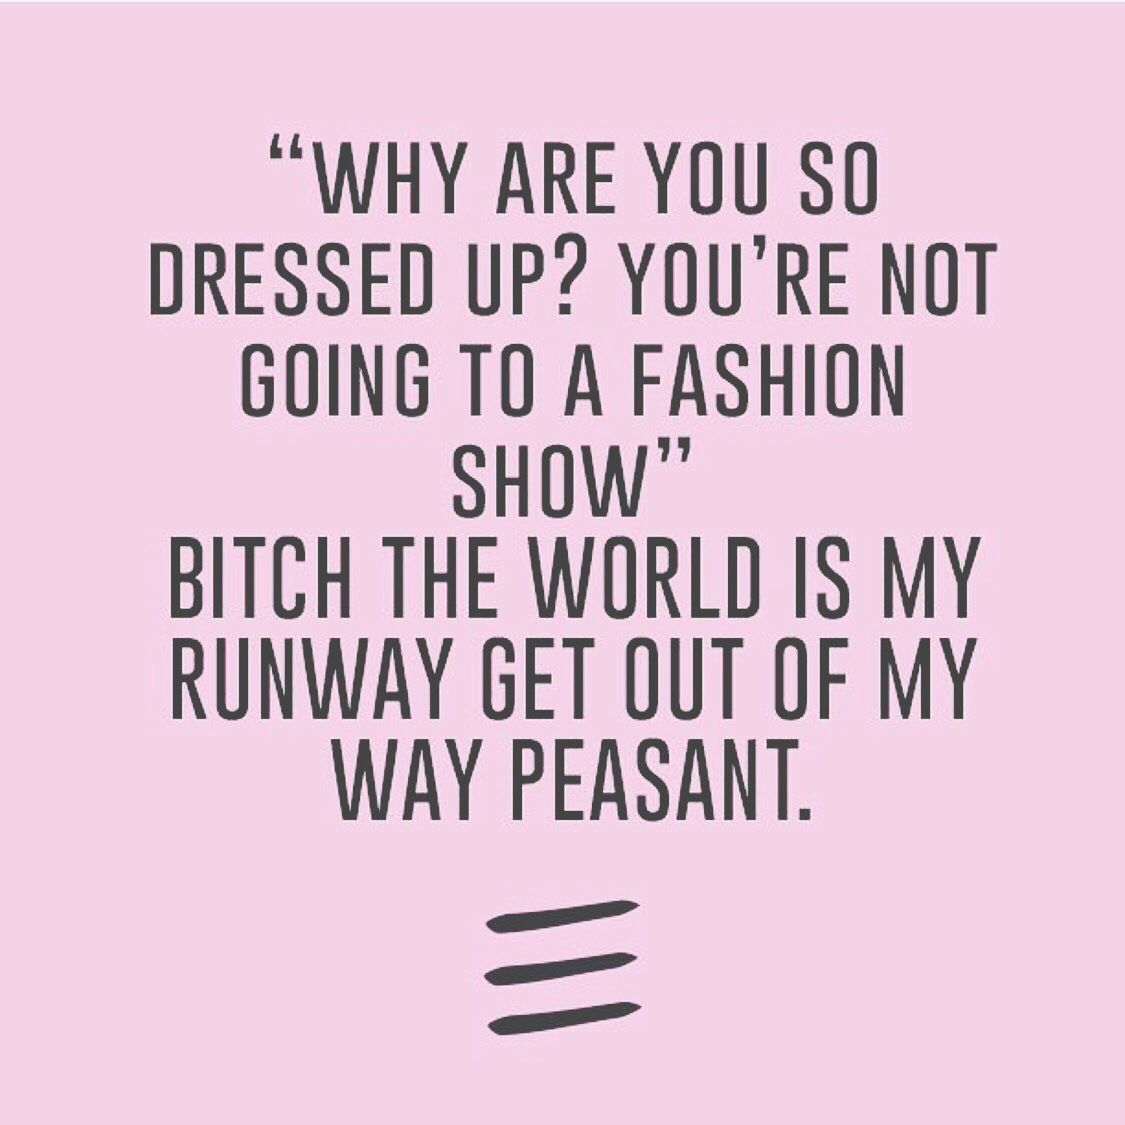 Quotes About Bitches Why Are You So Dressed Up You're Not Going To A Fashion Show